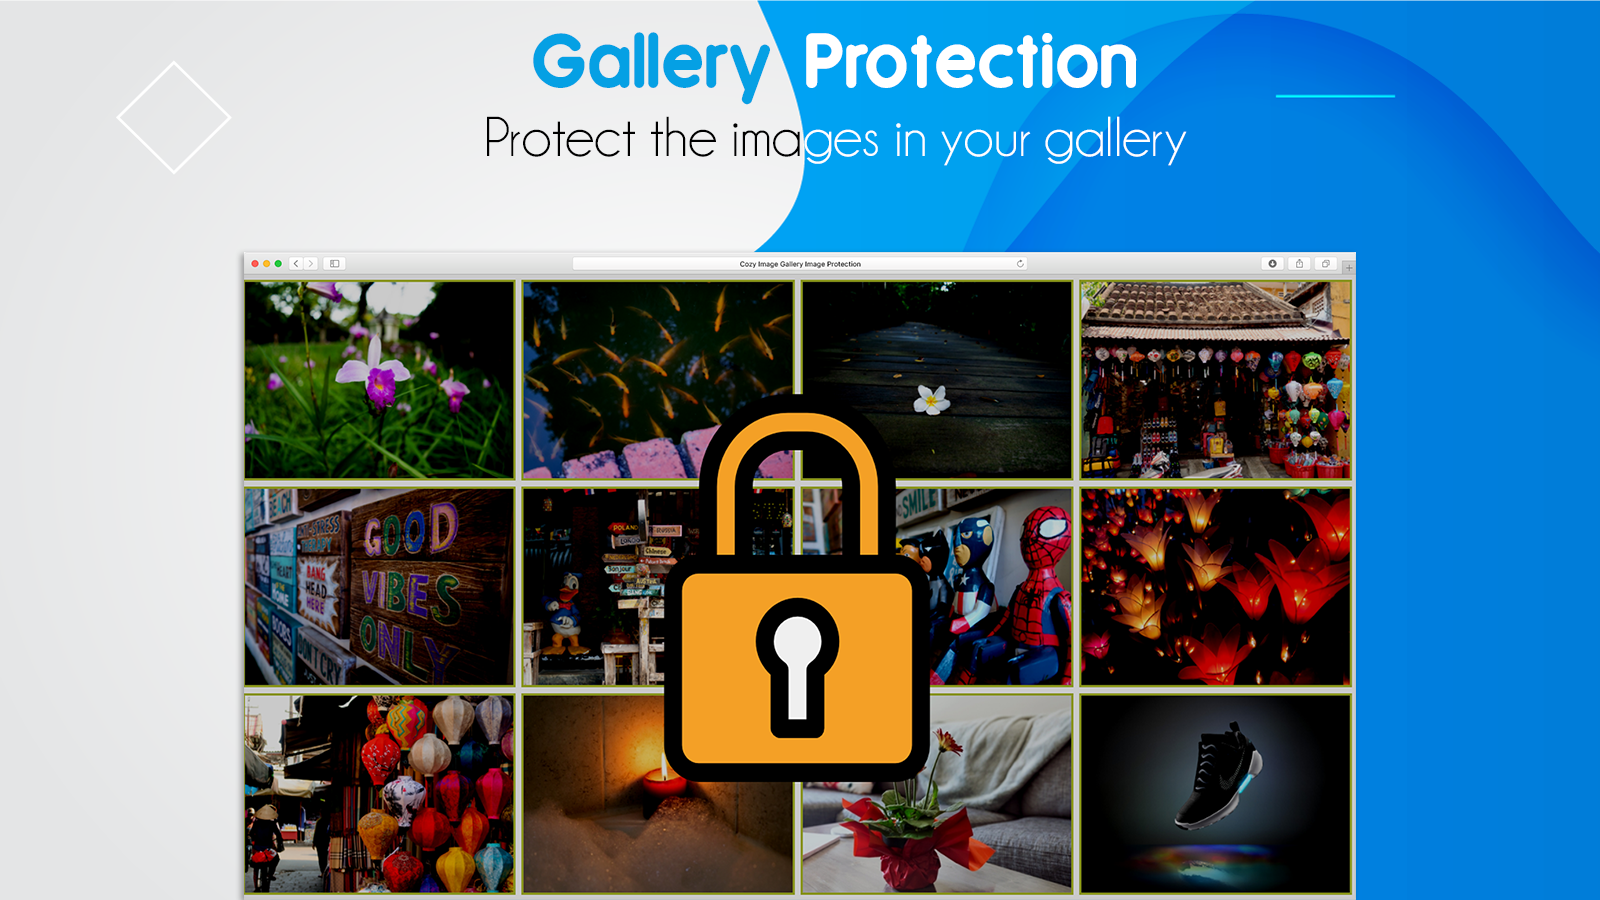 Antitheft shopify images gallery protection from competitors